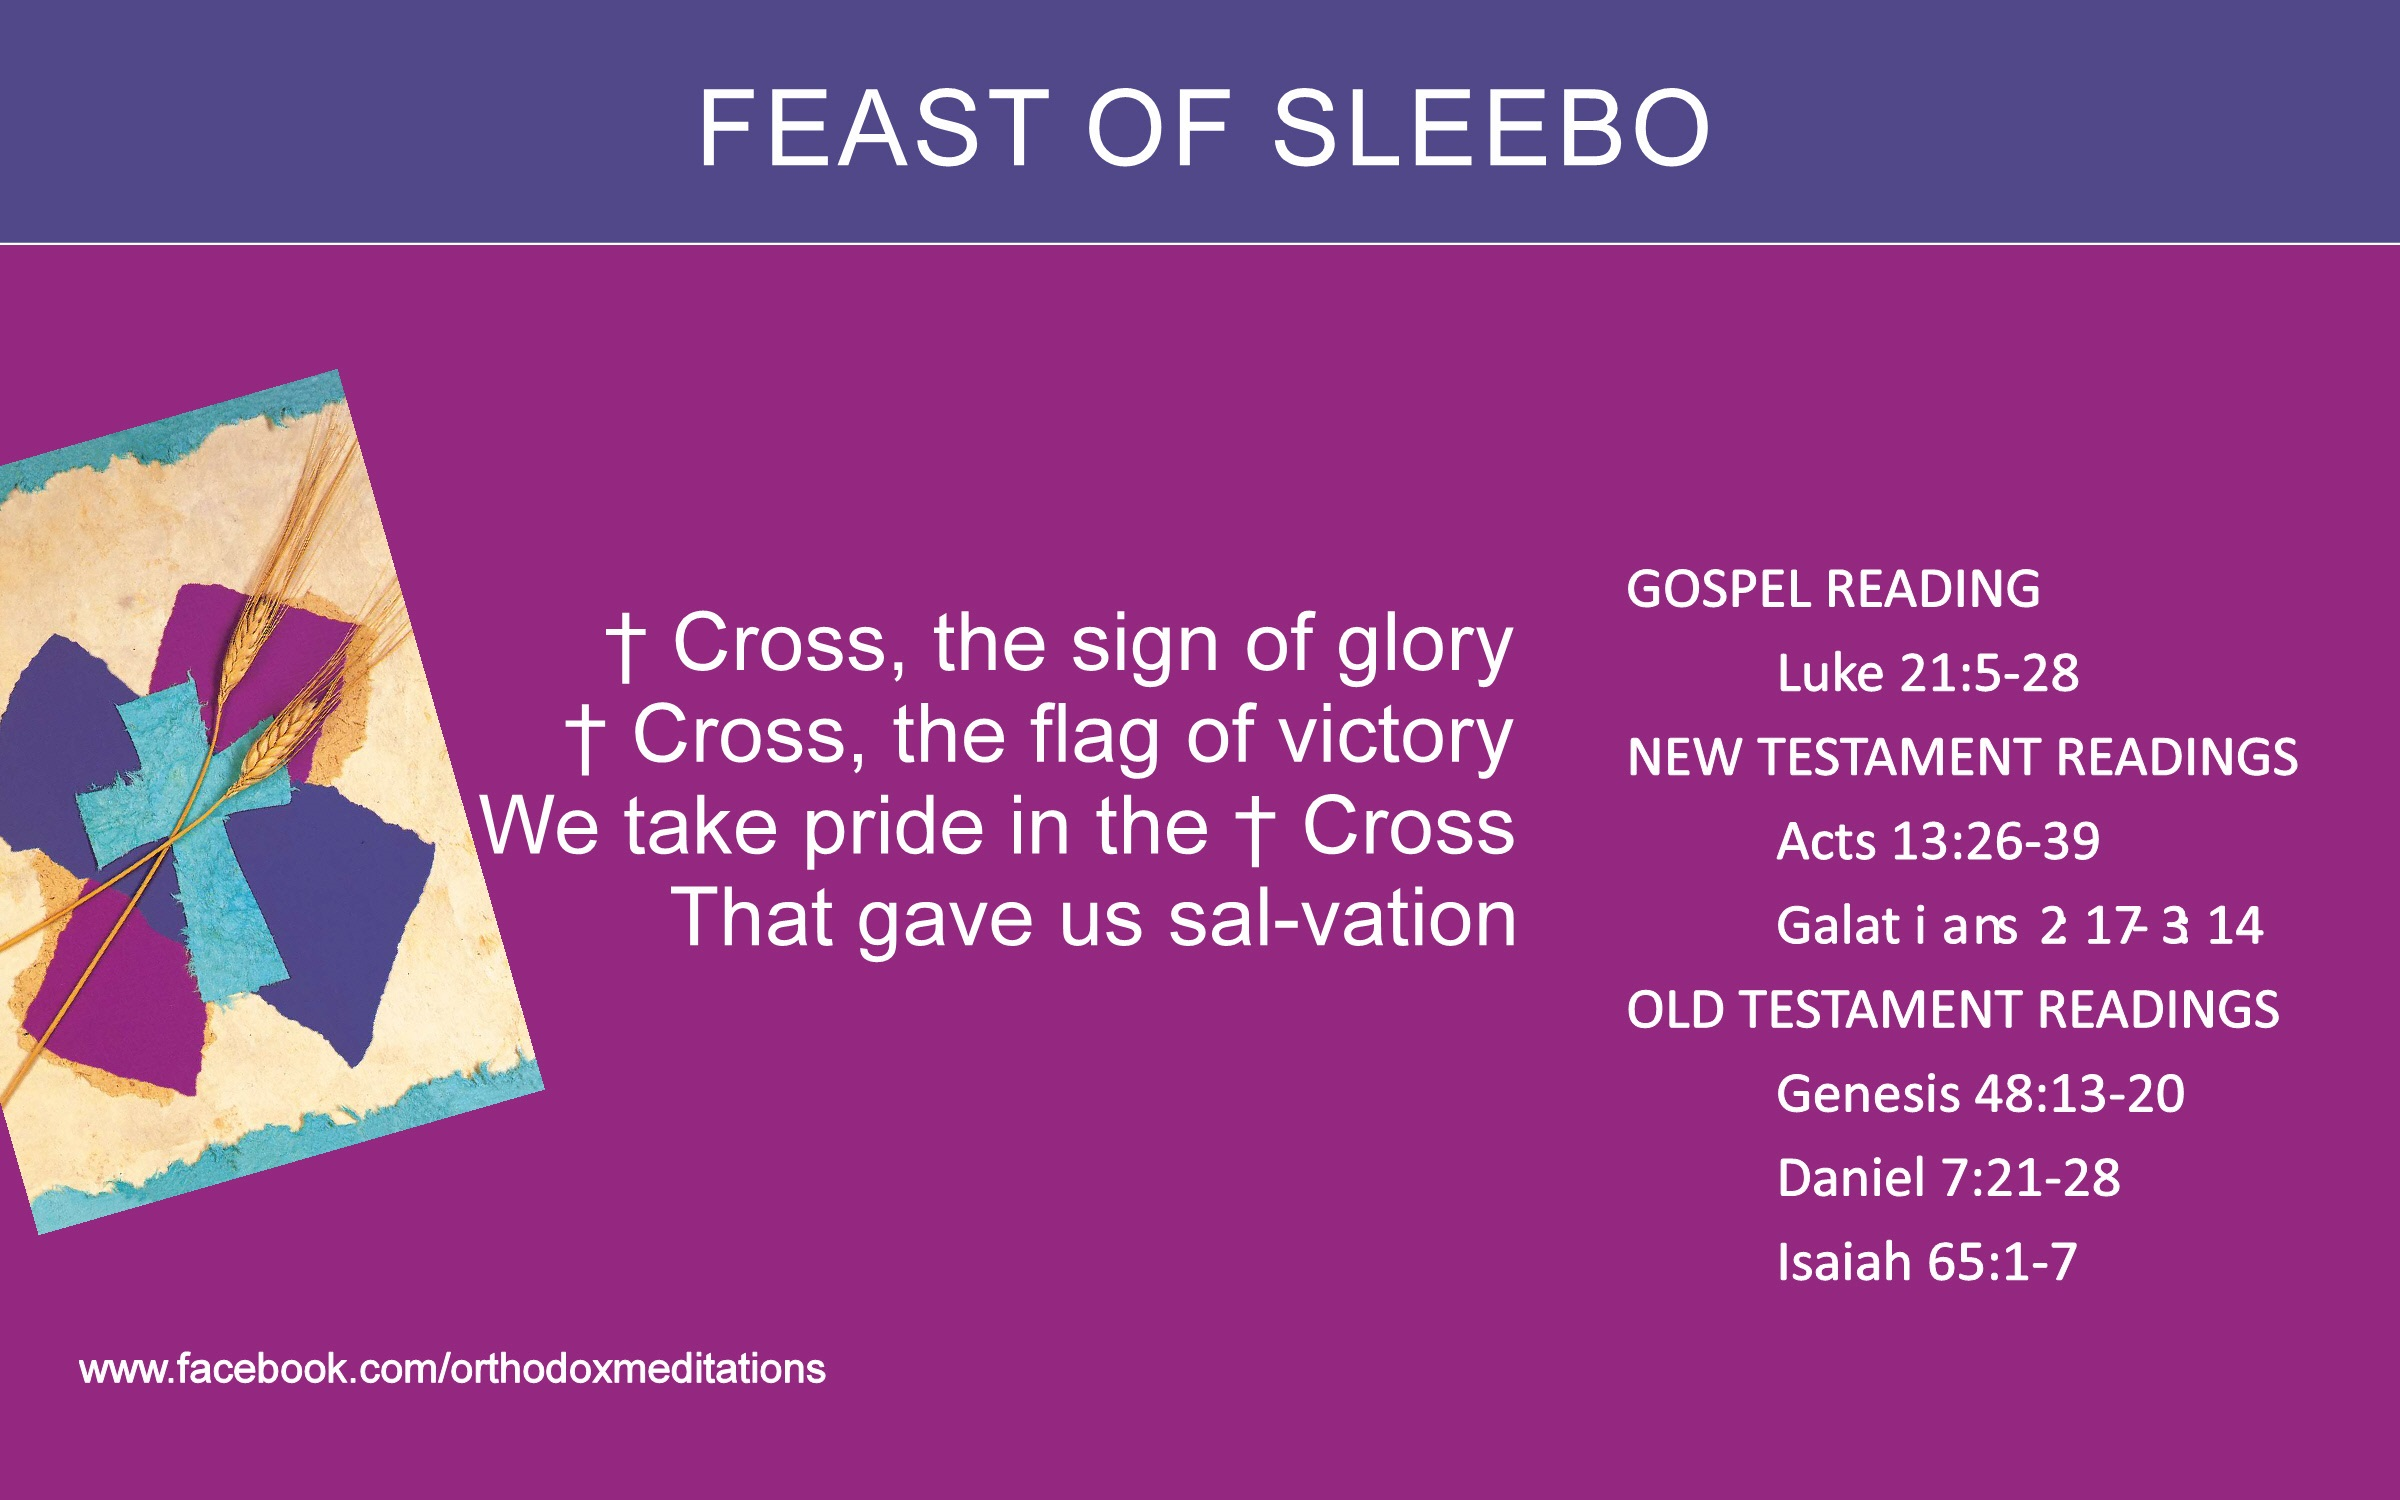 Feast-of-Sleebo_001